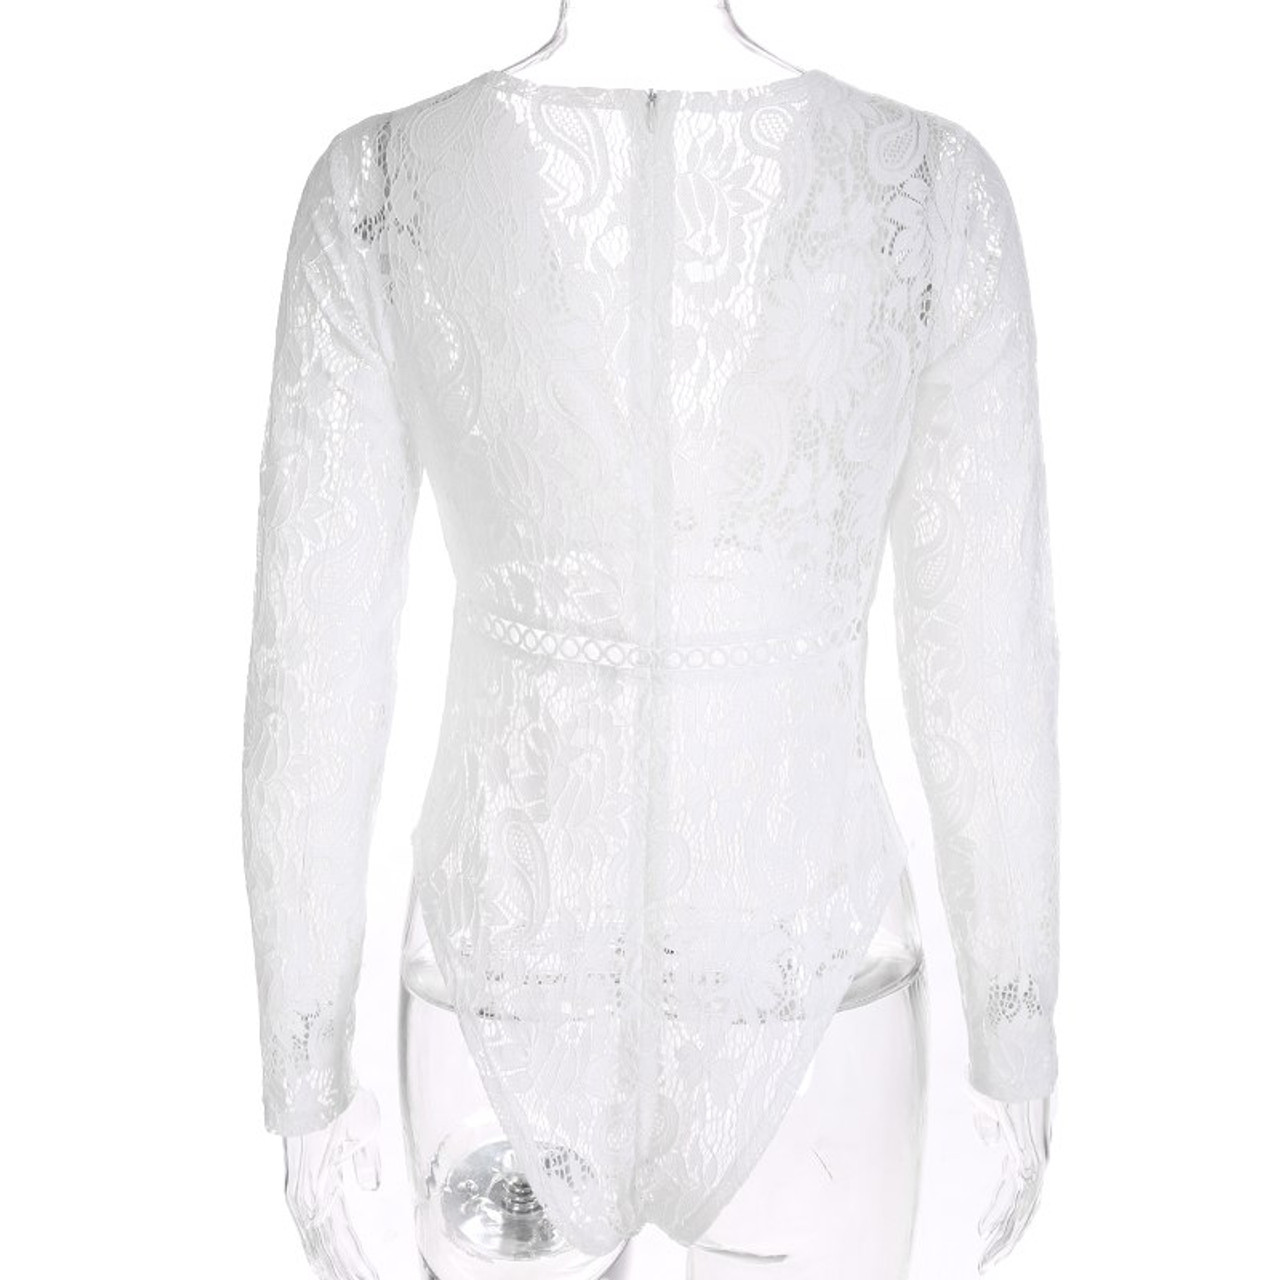 e1eb2f905 ... Sweetown Long Sleeve Lace Bodysuit Elegant Shirt Women White Spring  Summer 2019 Body Mujer Sexy Transparent